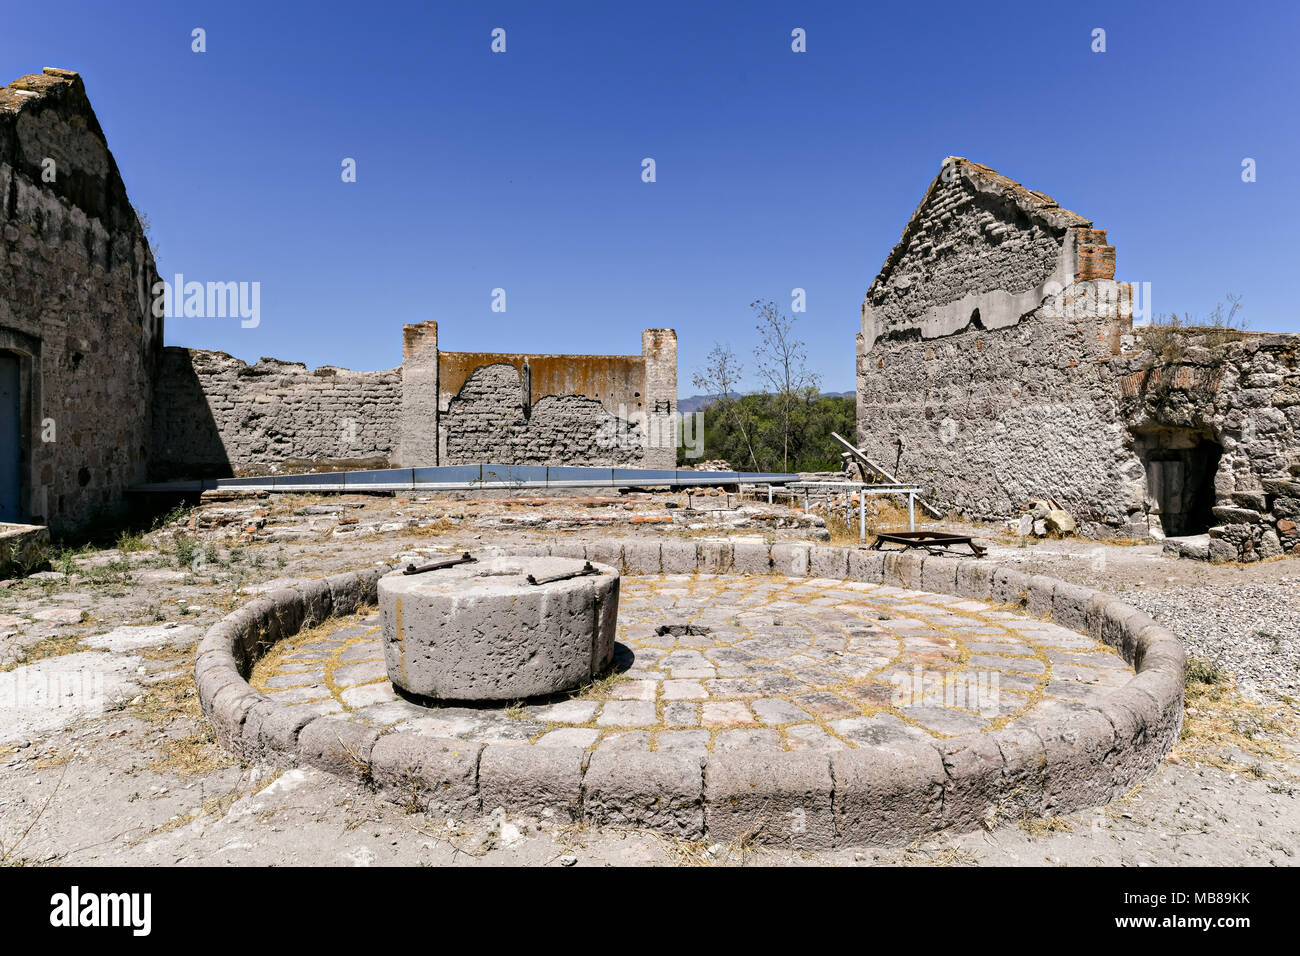 The ruins of a palenque for making Mezcal at the fading Hacienda de Jaral de Berrio in Jaral de Berrios, Guanajuato, Mexico. The abandoned Jaral de Berrio hacienda was once the largest in Mexico and housed over 6,000 people on the property and is credited with creating Mescal. - Stock Image